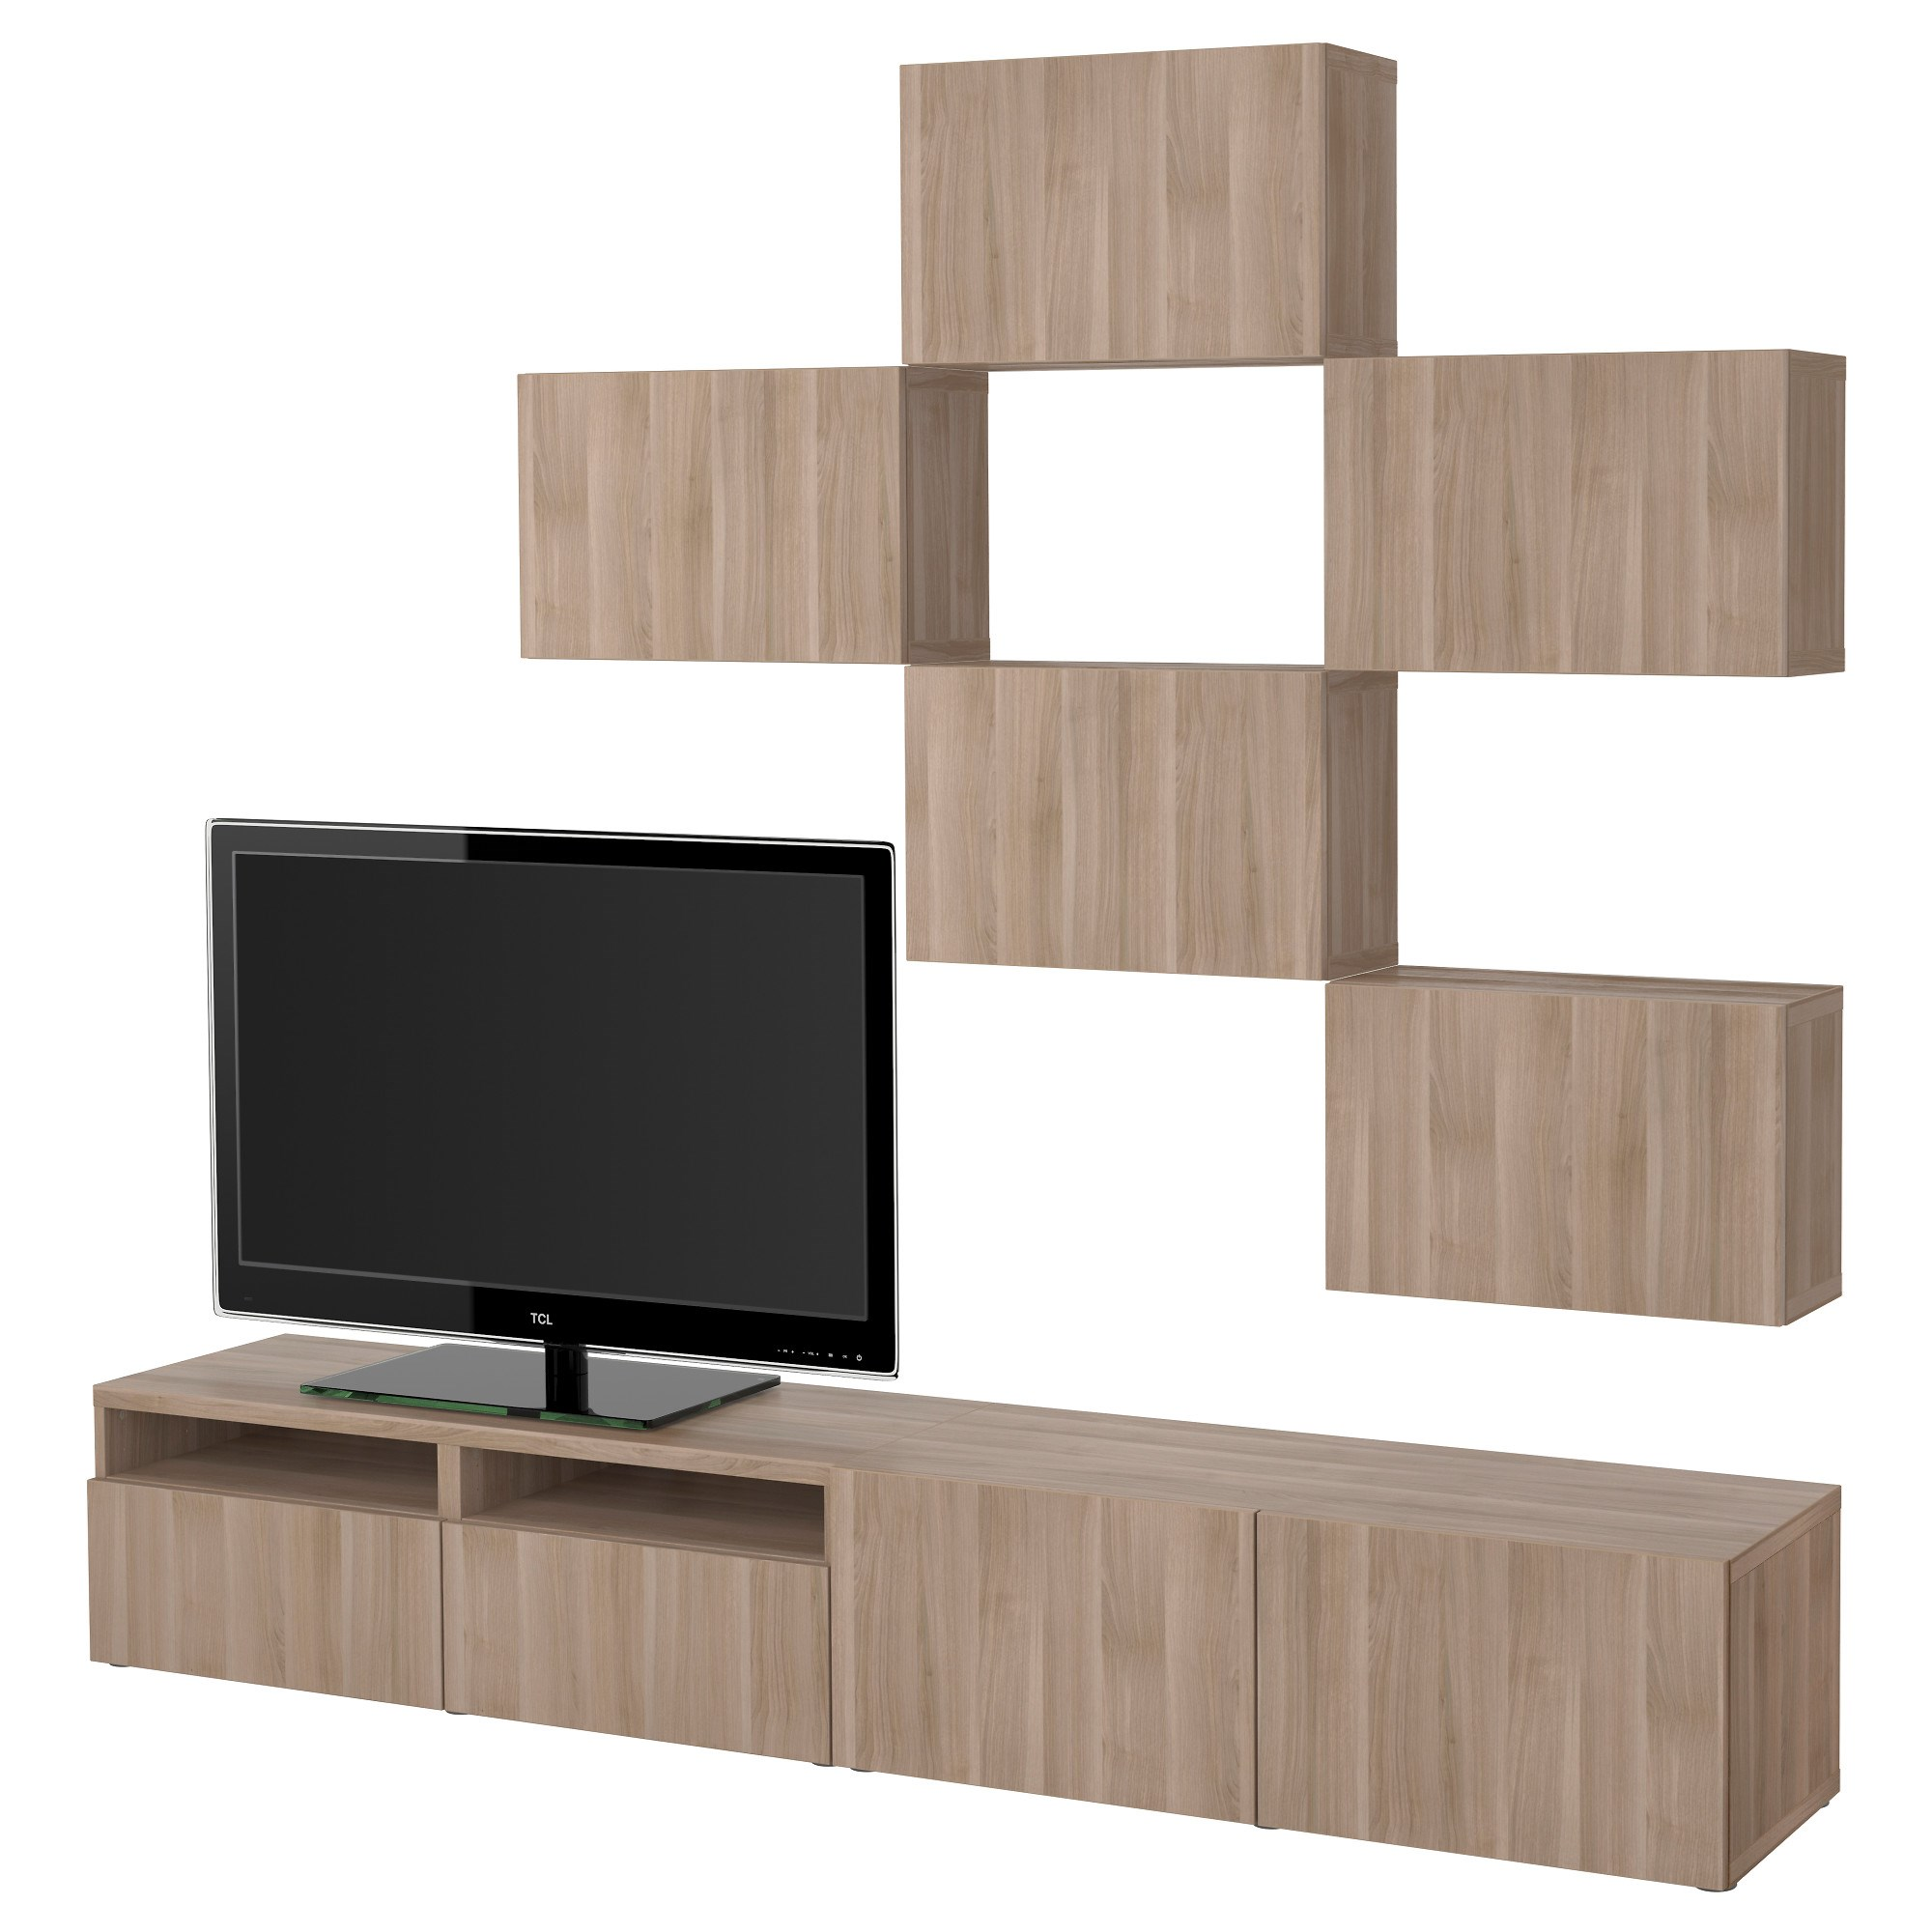 Besta Lappviken Tv Storage Unit Grey Walnut Effect Soft Closing  # Besta Ikea Meuble Tv